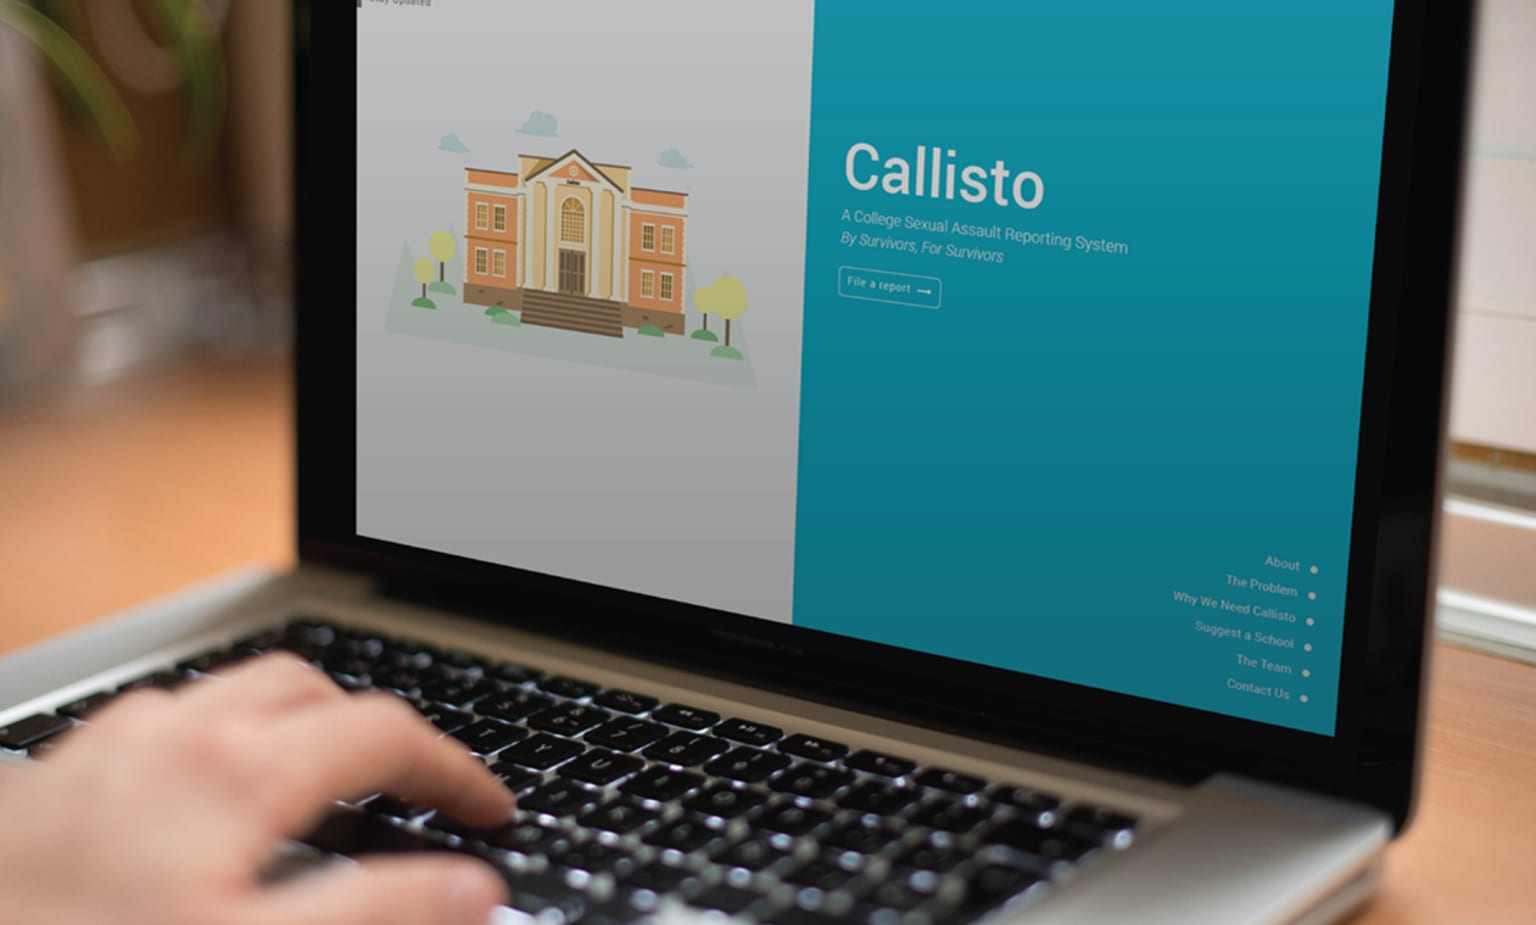 Callisto, a College Sexual Assault Reporting System